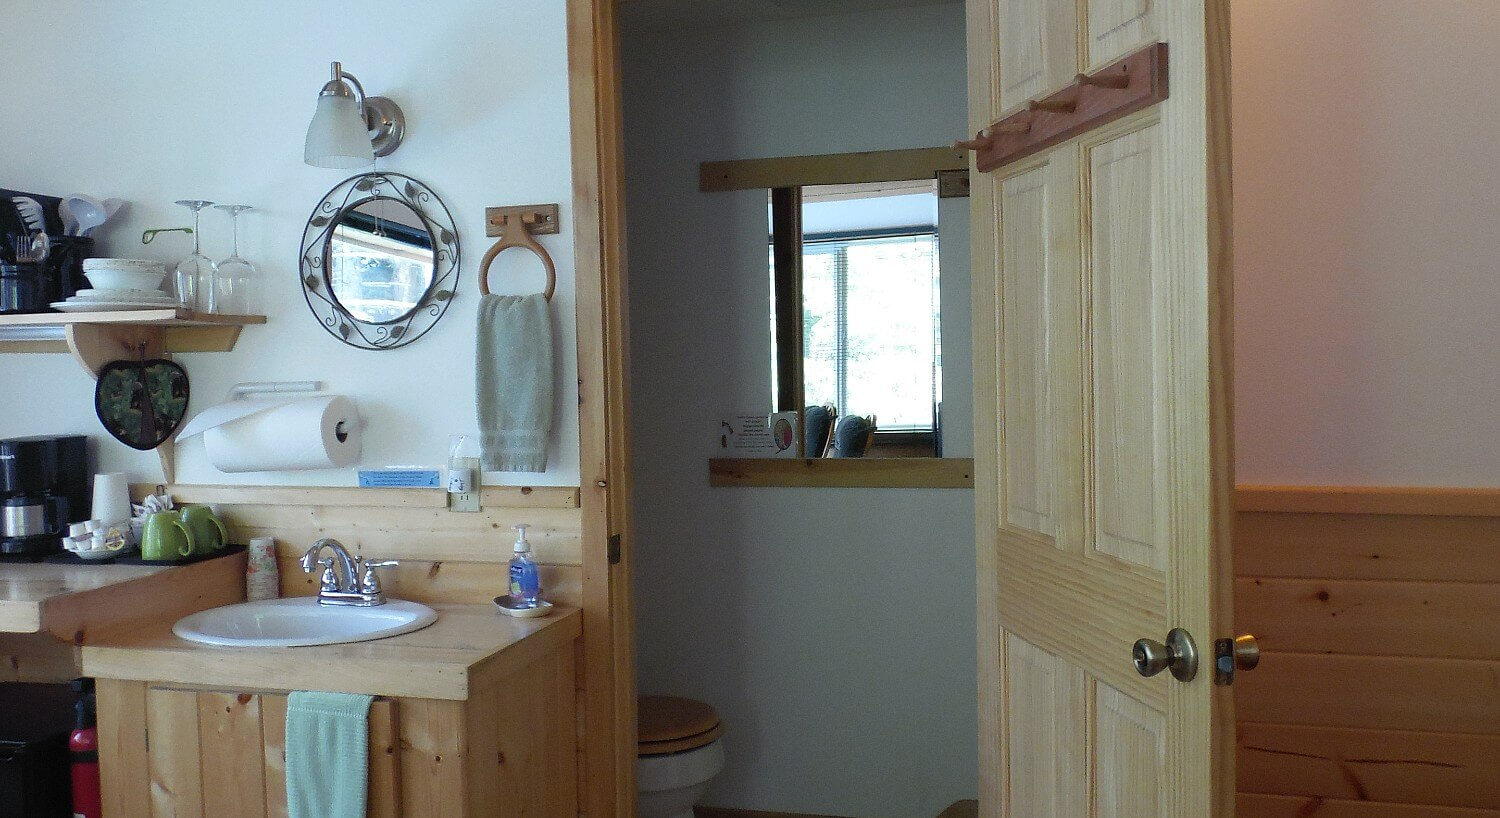 Cabin bathroom with single sink, room with toilet and coffee bar area with dishes and coffeemaker.